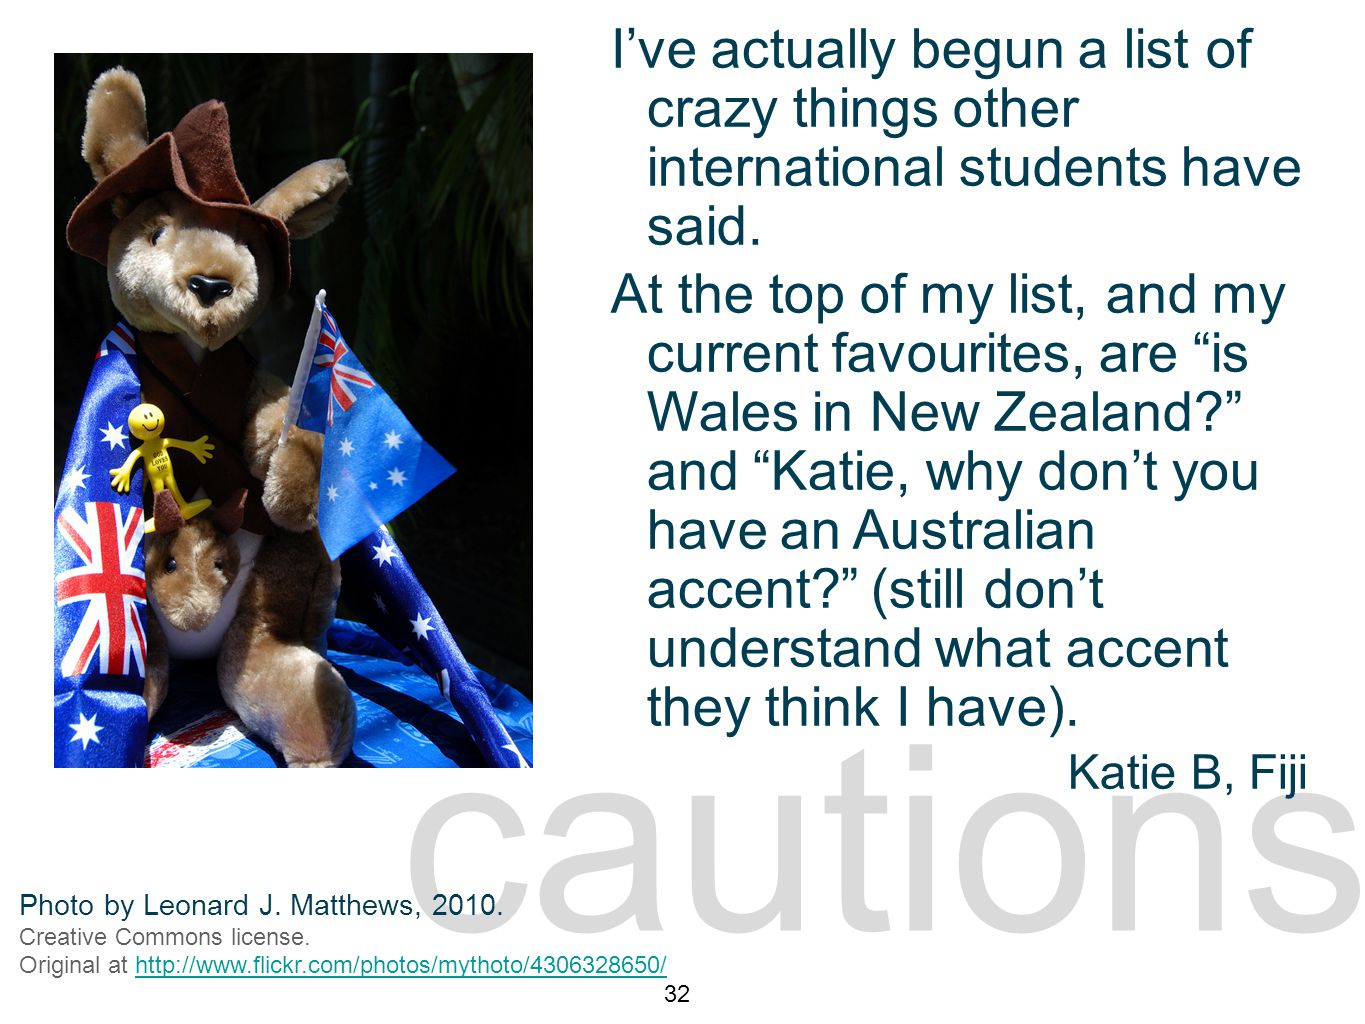 cautions caution 2 I've actually begun a list of crazy things other international students have said.